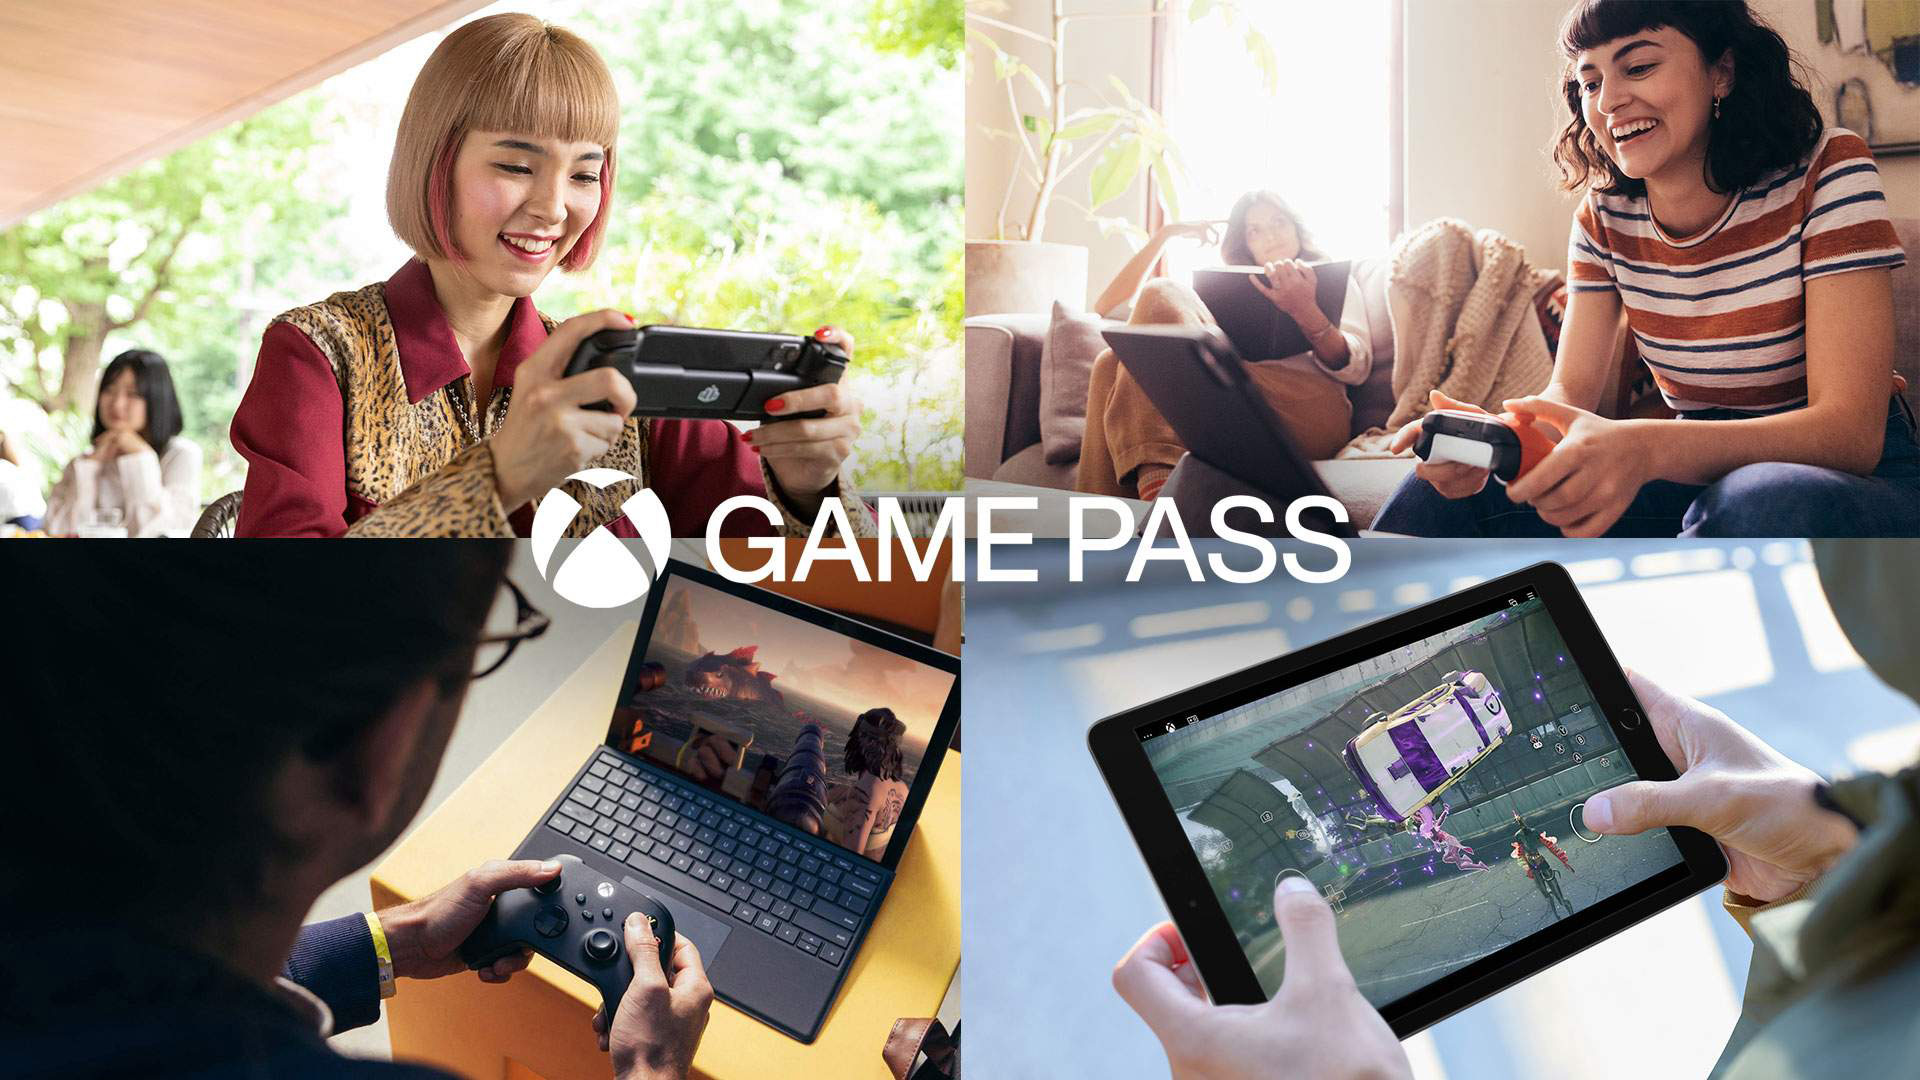 xbox-cloud-gaming-lands-in-australia:-here's-how-to-sign-up